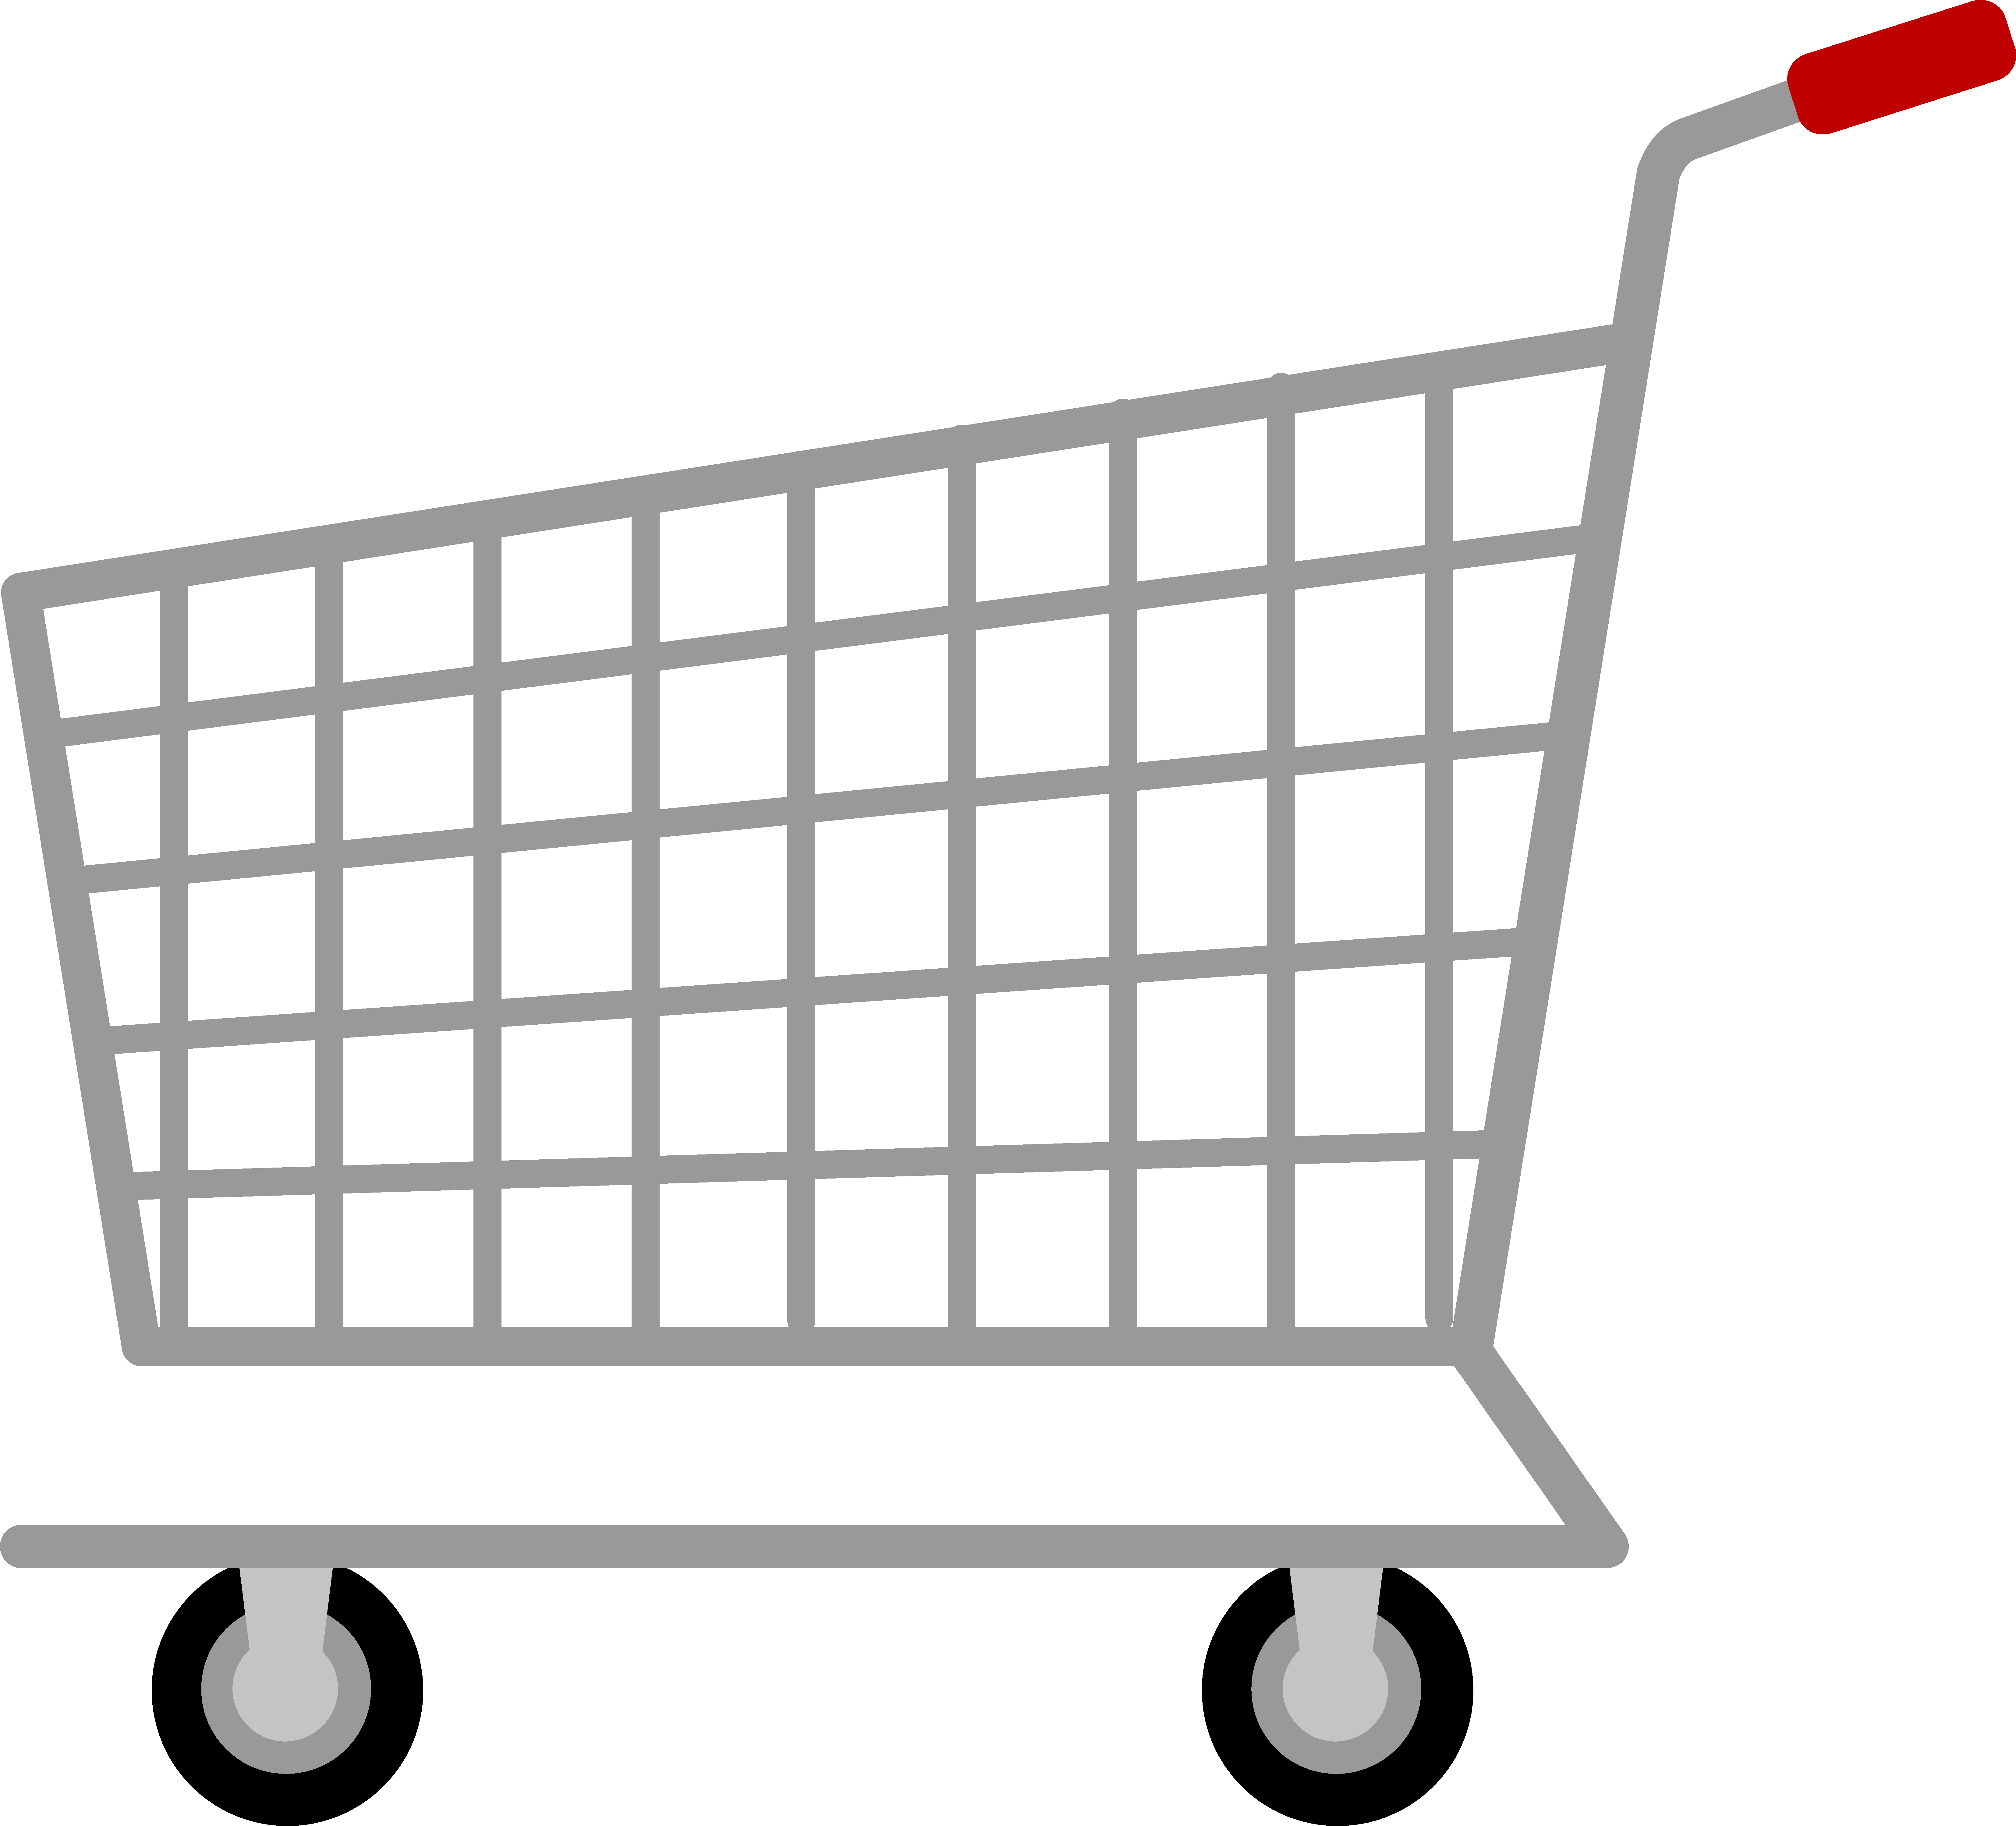 graphic freeuse stock Supermarket clipart outline. Shopping cart png images